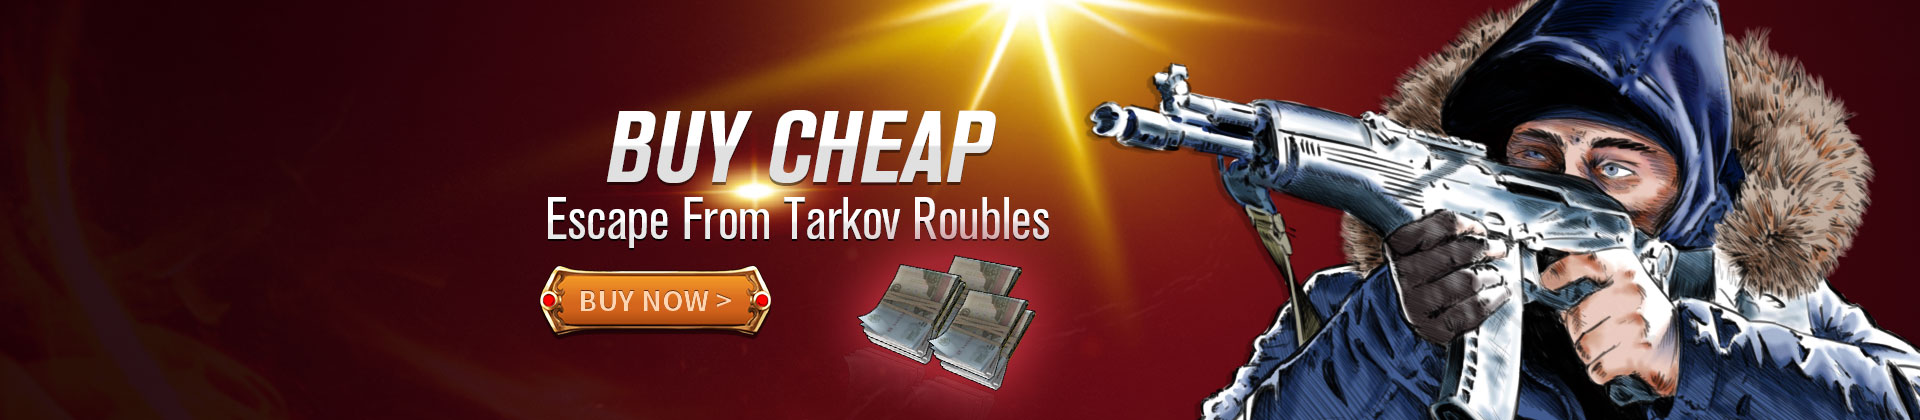 Cheap Escape From Tarkov Roubles